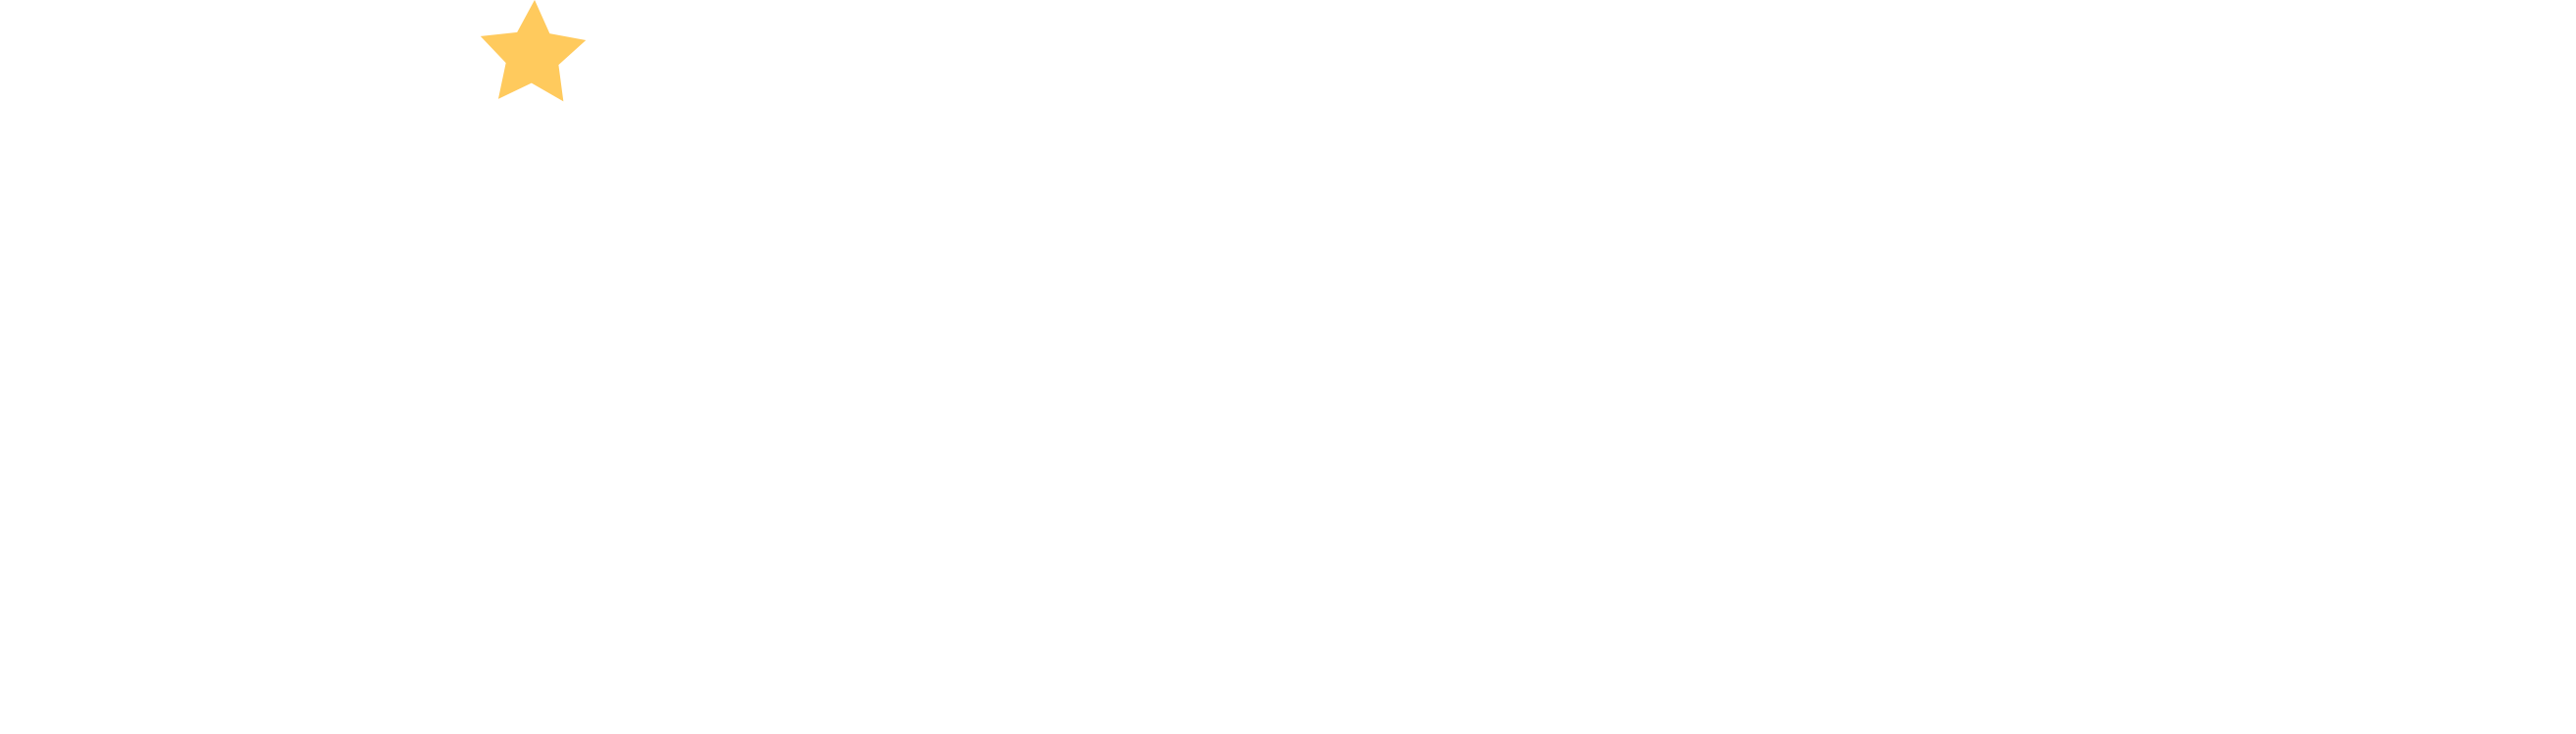 National Center for Disability Entrepreneurship at the Viscard Center - Empowering innovation self-starters to self-employment success